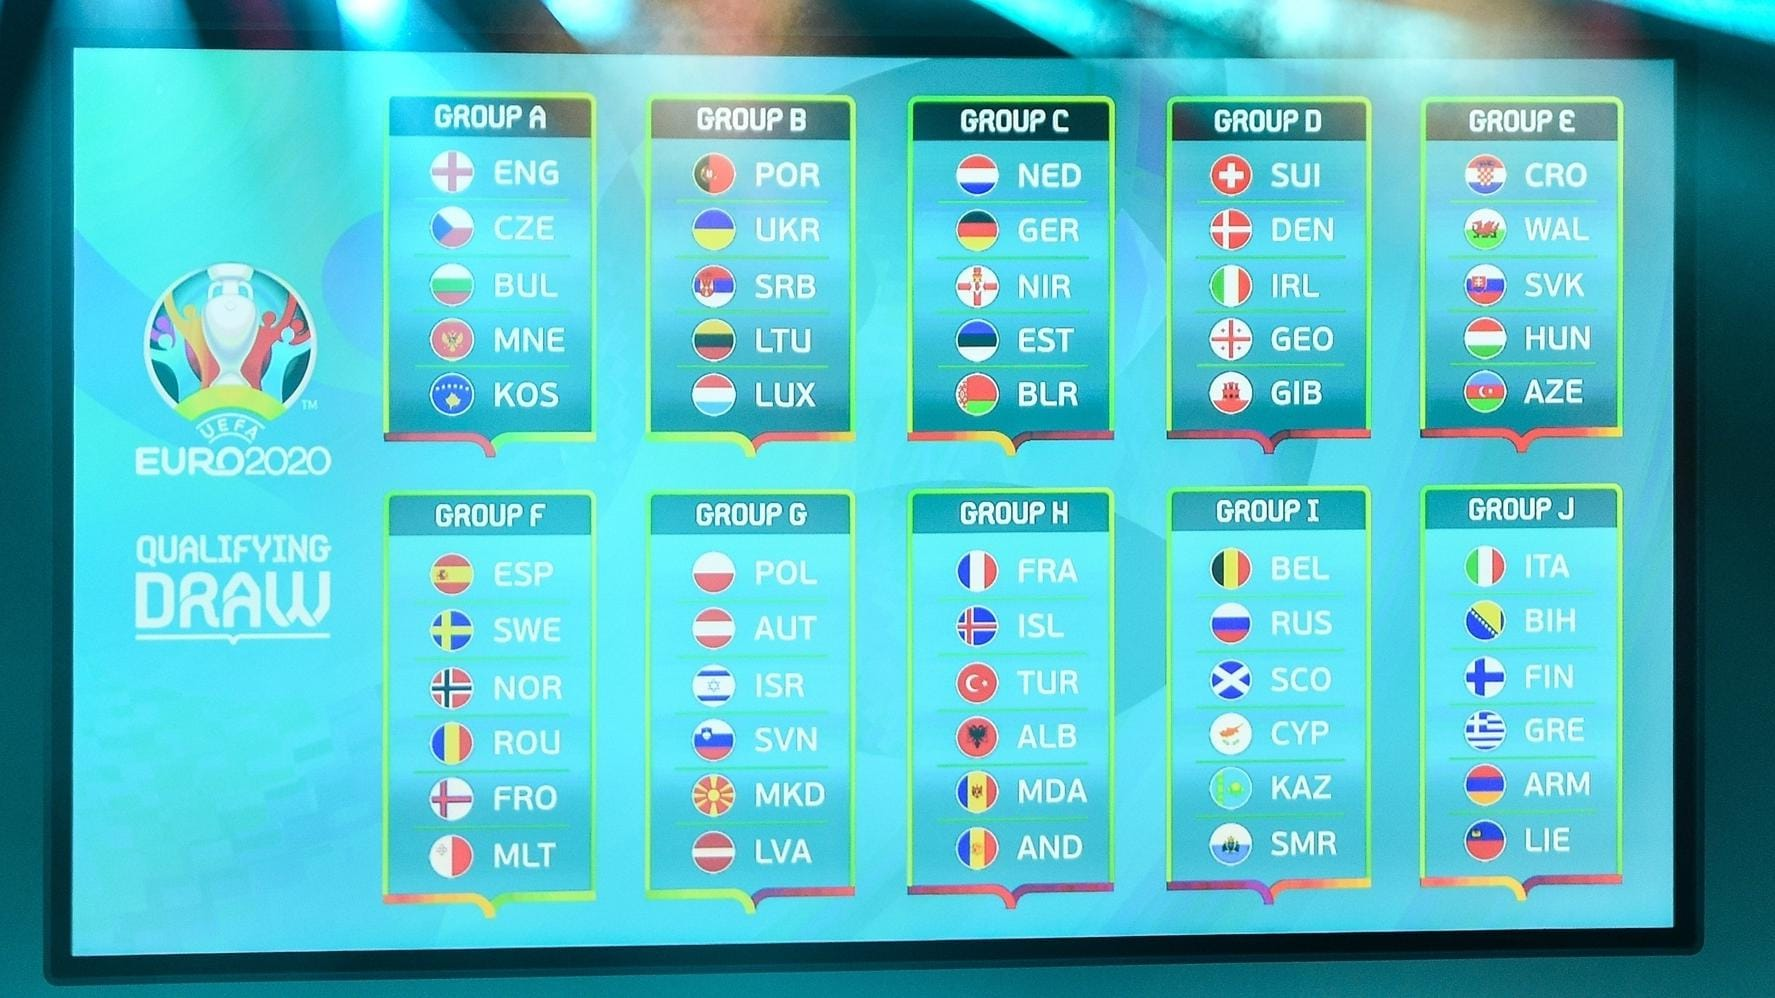 World Cup 2020 Qualifying Groups Schedule.Uefa Euro 2020 Qualifying Draw European Qualifiers Uefa Com